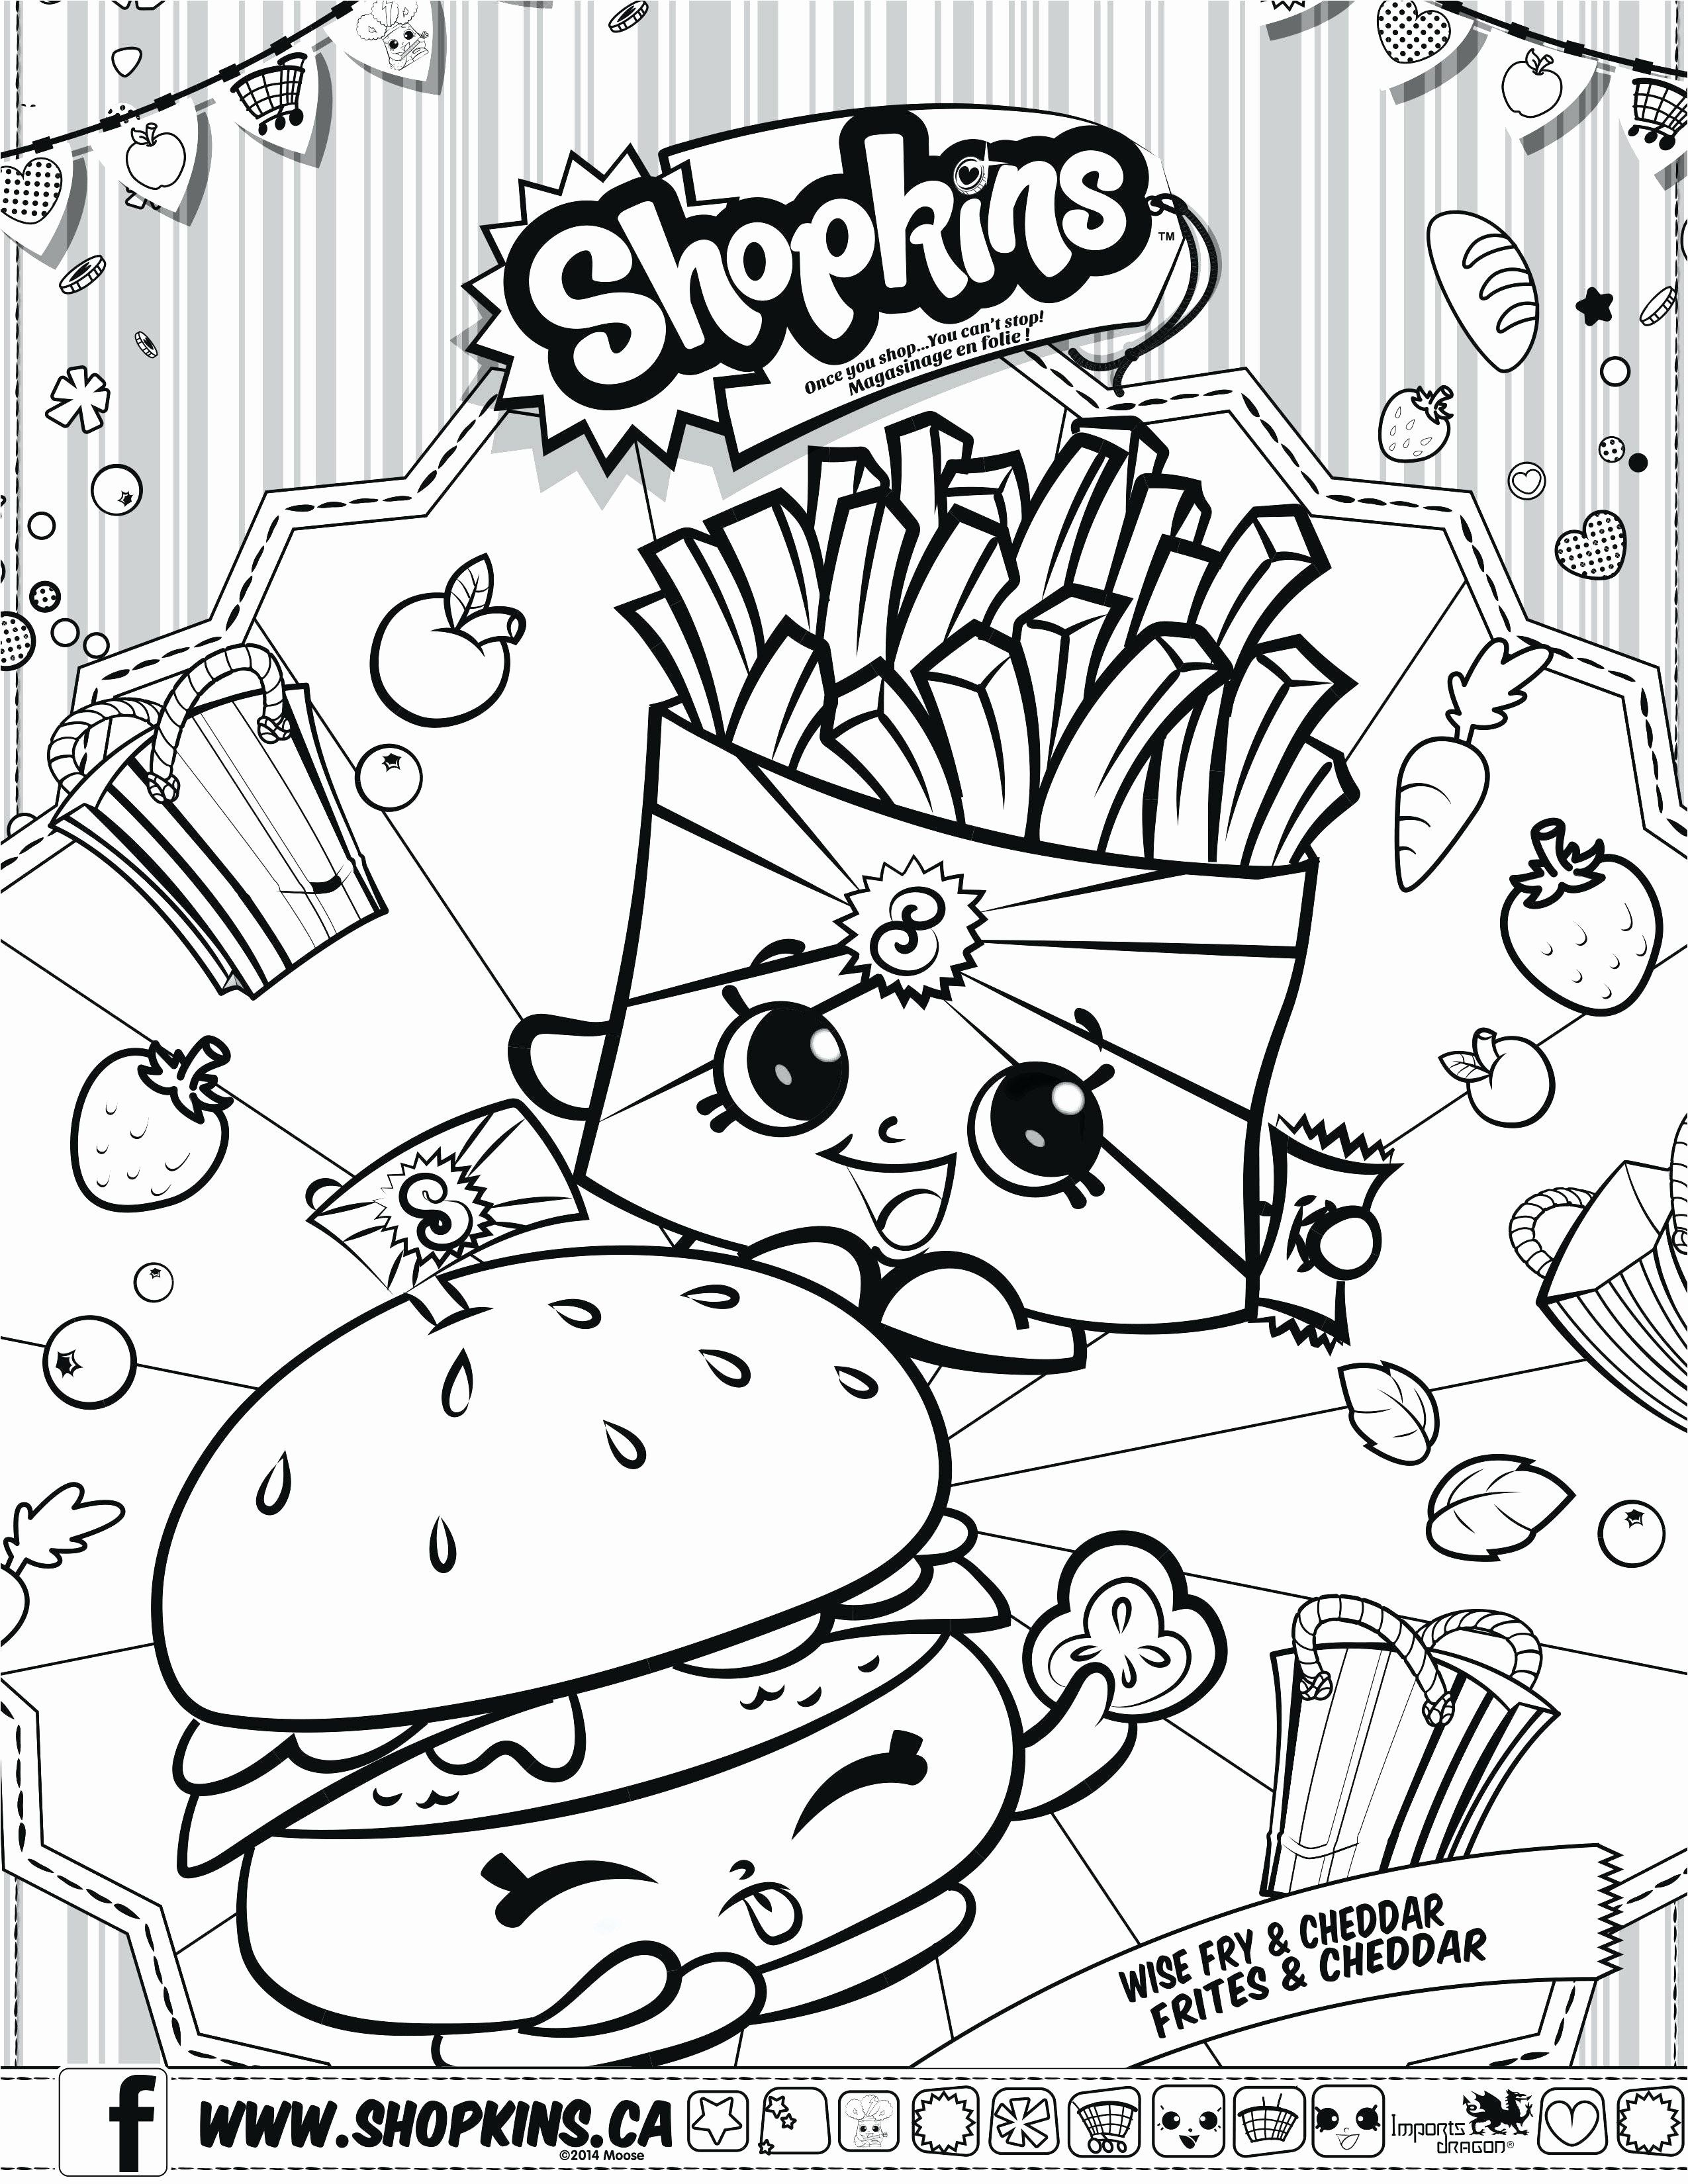 6th Grade Coloring Sheets Beautiful Coloring Free Math Coloring Worksheets For 6 Valentine Coloring Pages Coloring Pages Inspirational Shopkins Colouring Pages [ 3300 x 2550 Pixel ]